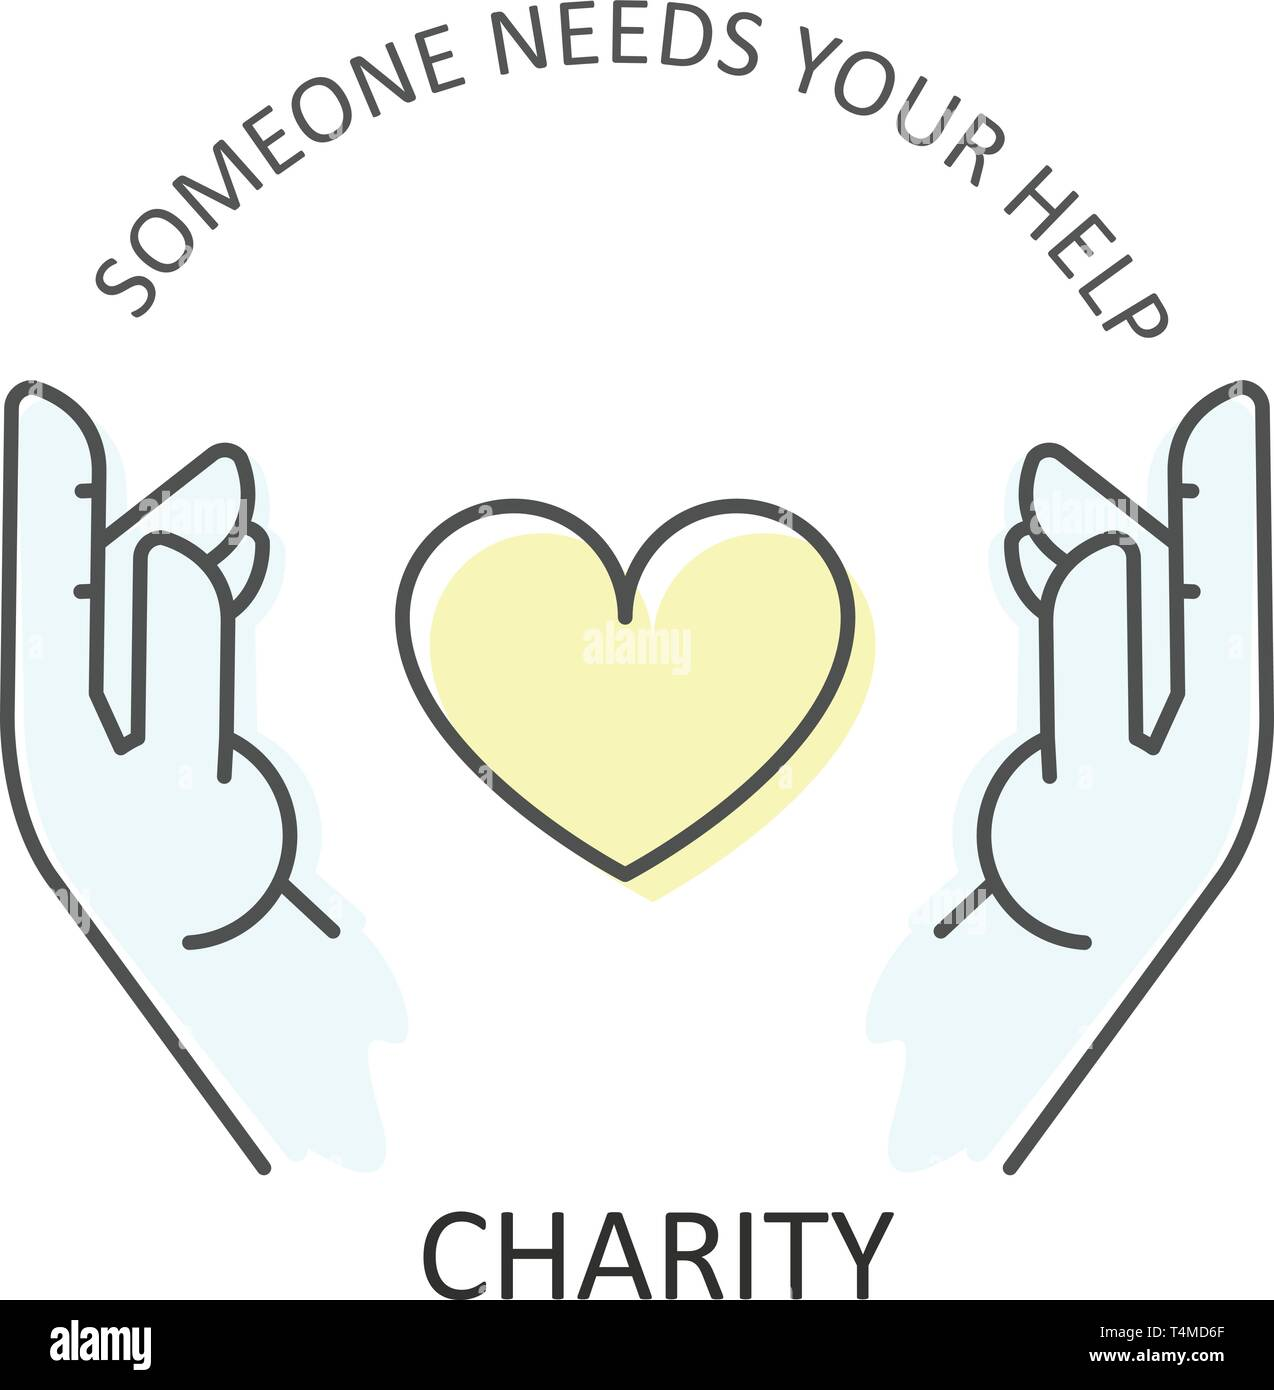 Hands embraces heart - charity, donation and volunteer help concept Stock Vector